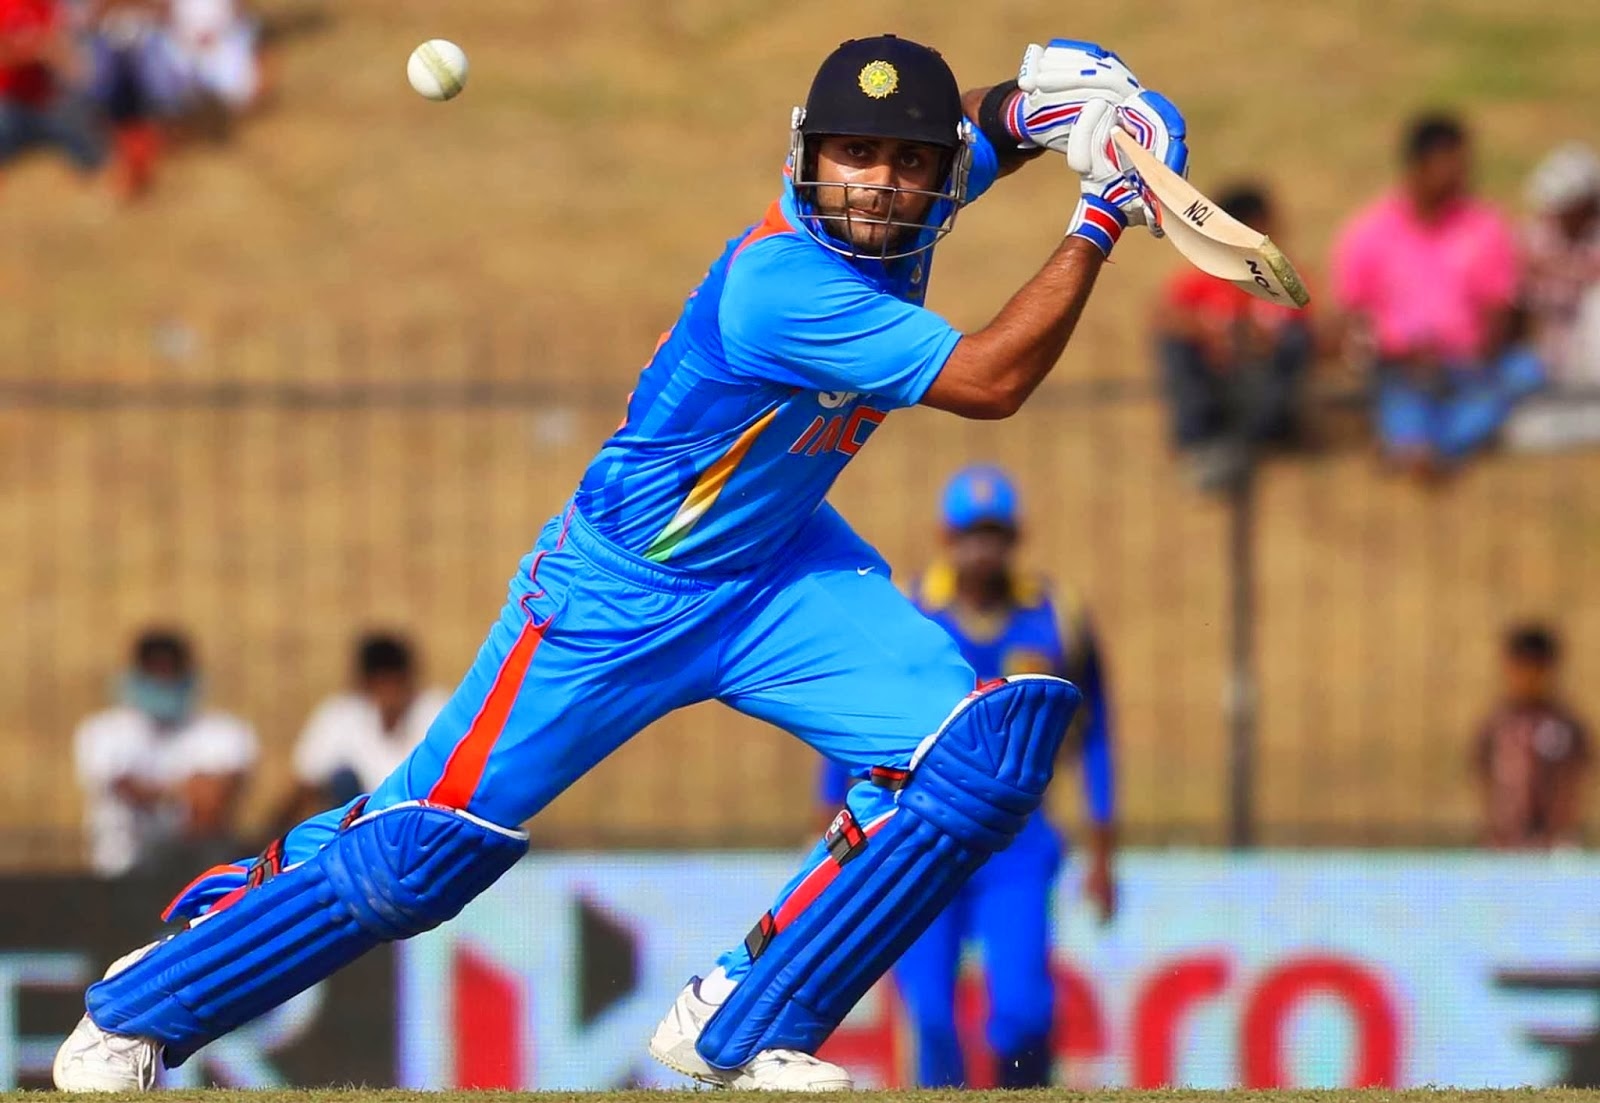 Sachin Tendulkar Hd Wallpapers For Laptop Virat Kohli Hd Wallpapers 2014 Cricket Hd Wallpapers